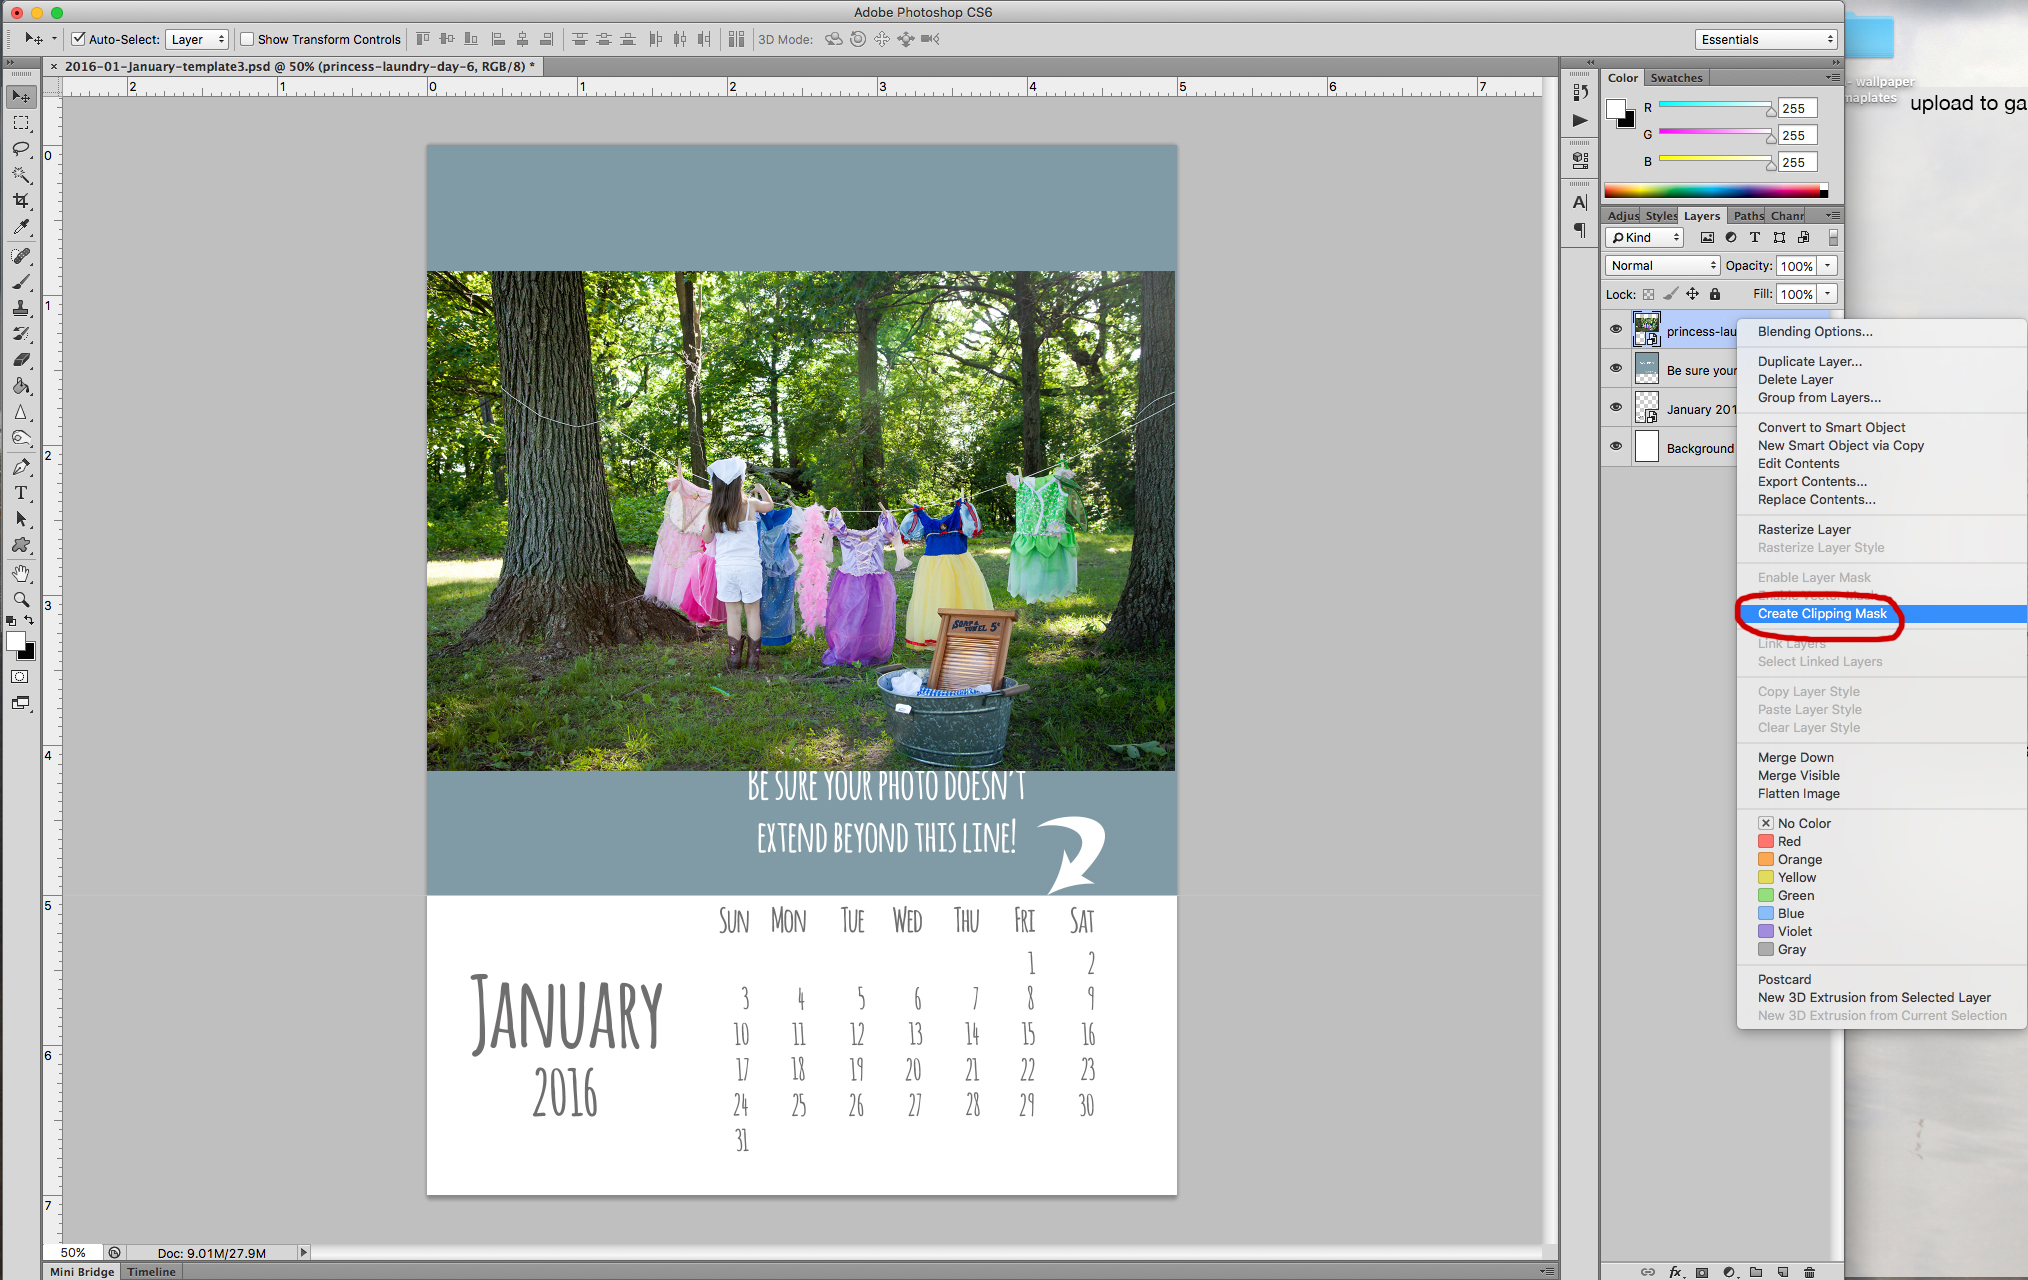 How to add photos to a Calendar Template